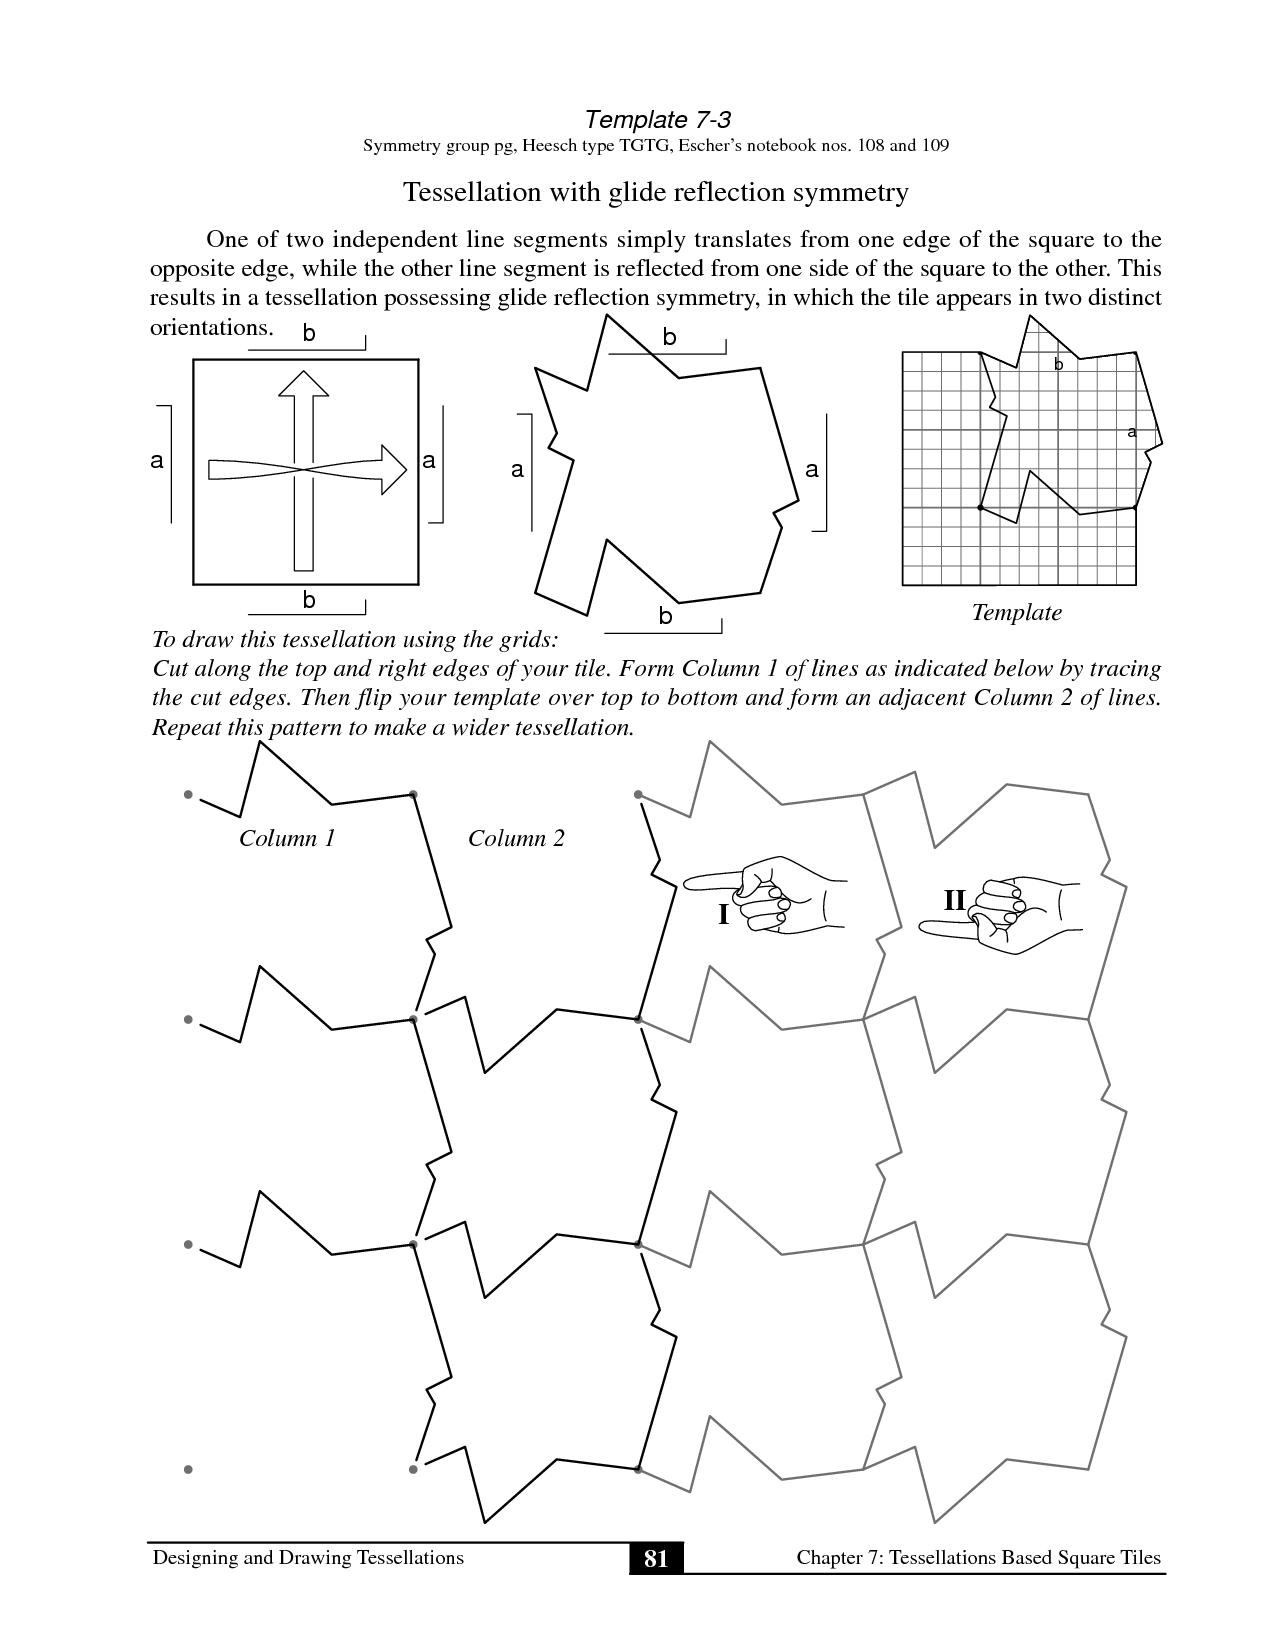 Stupendous image inside tessellation worksheets printable